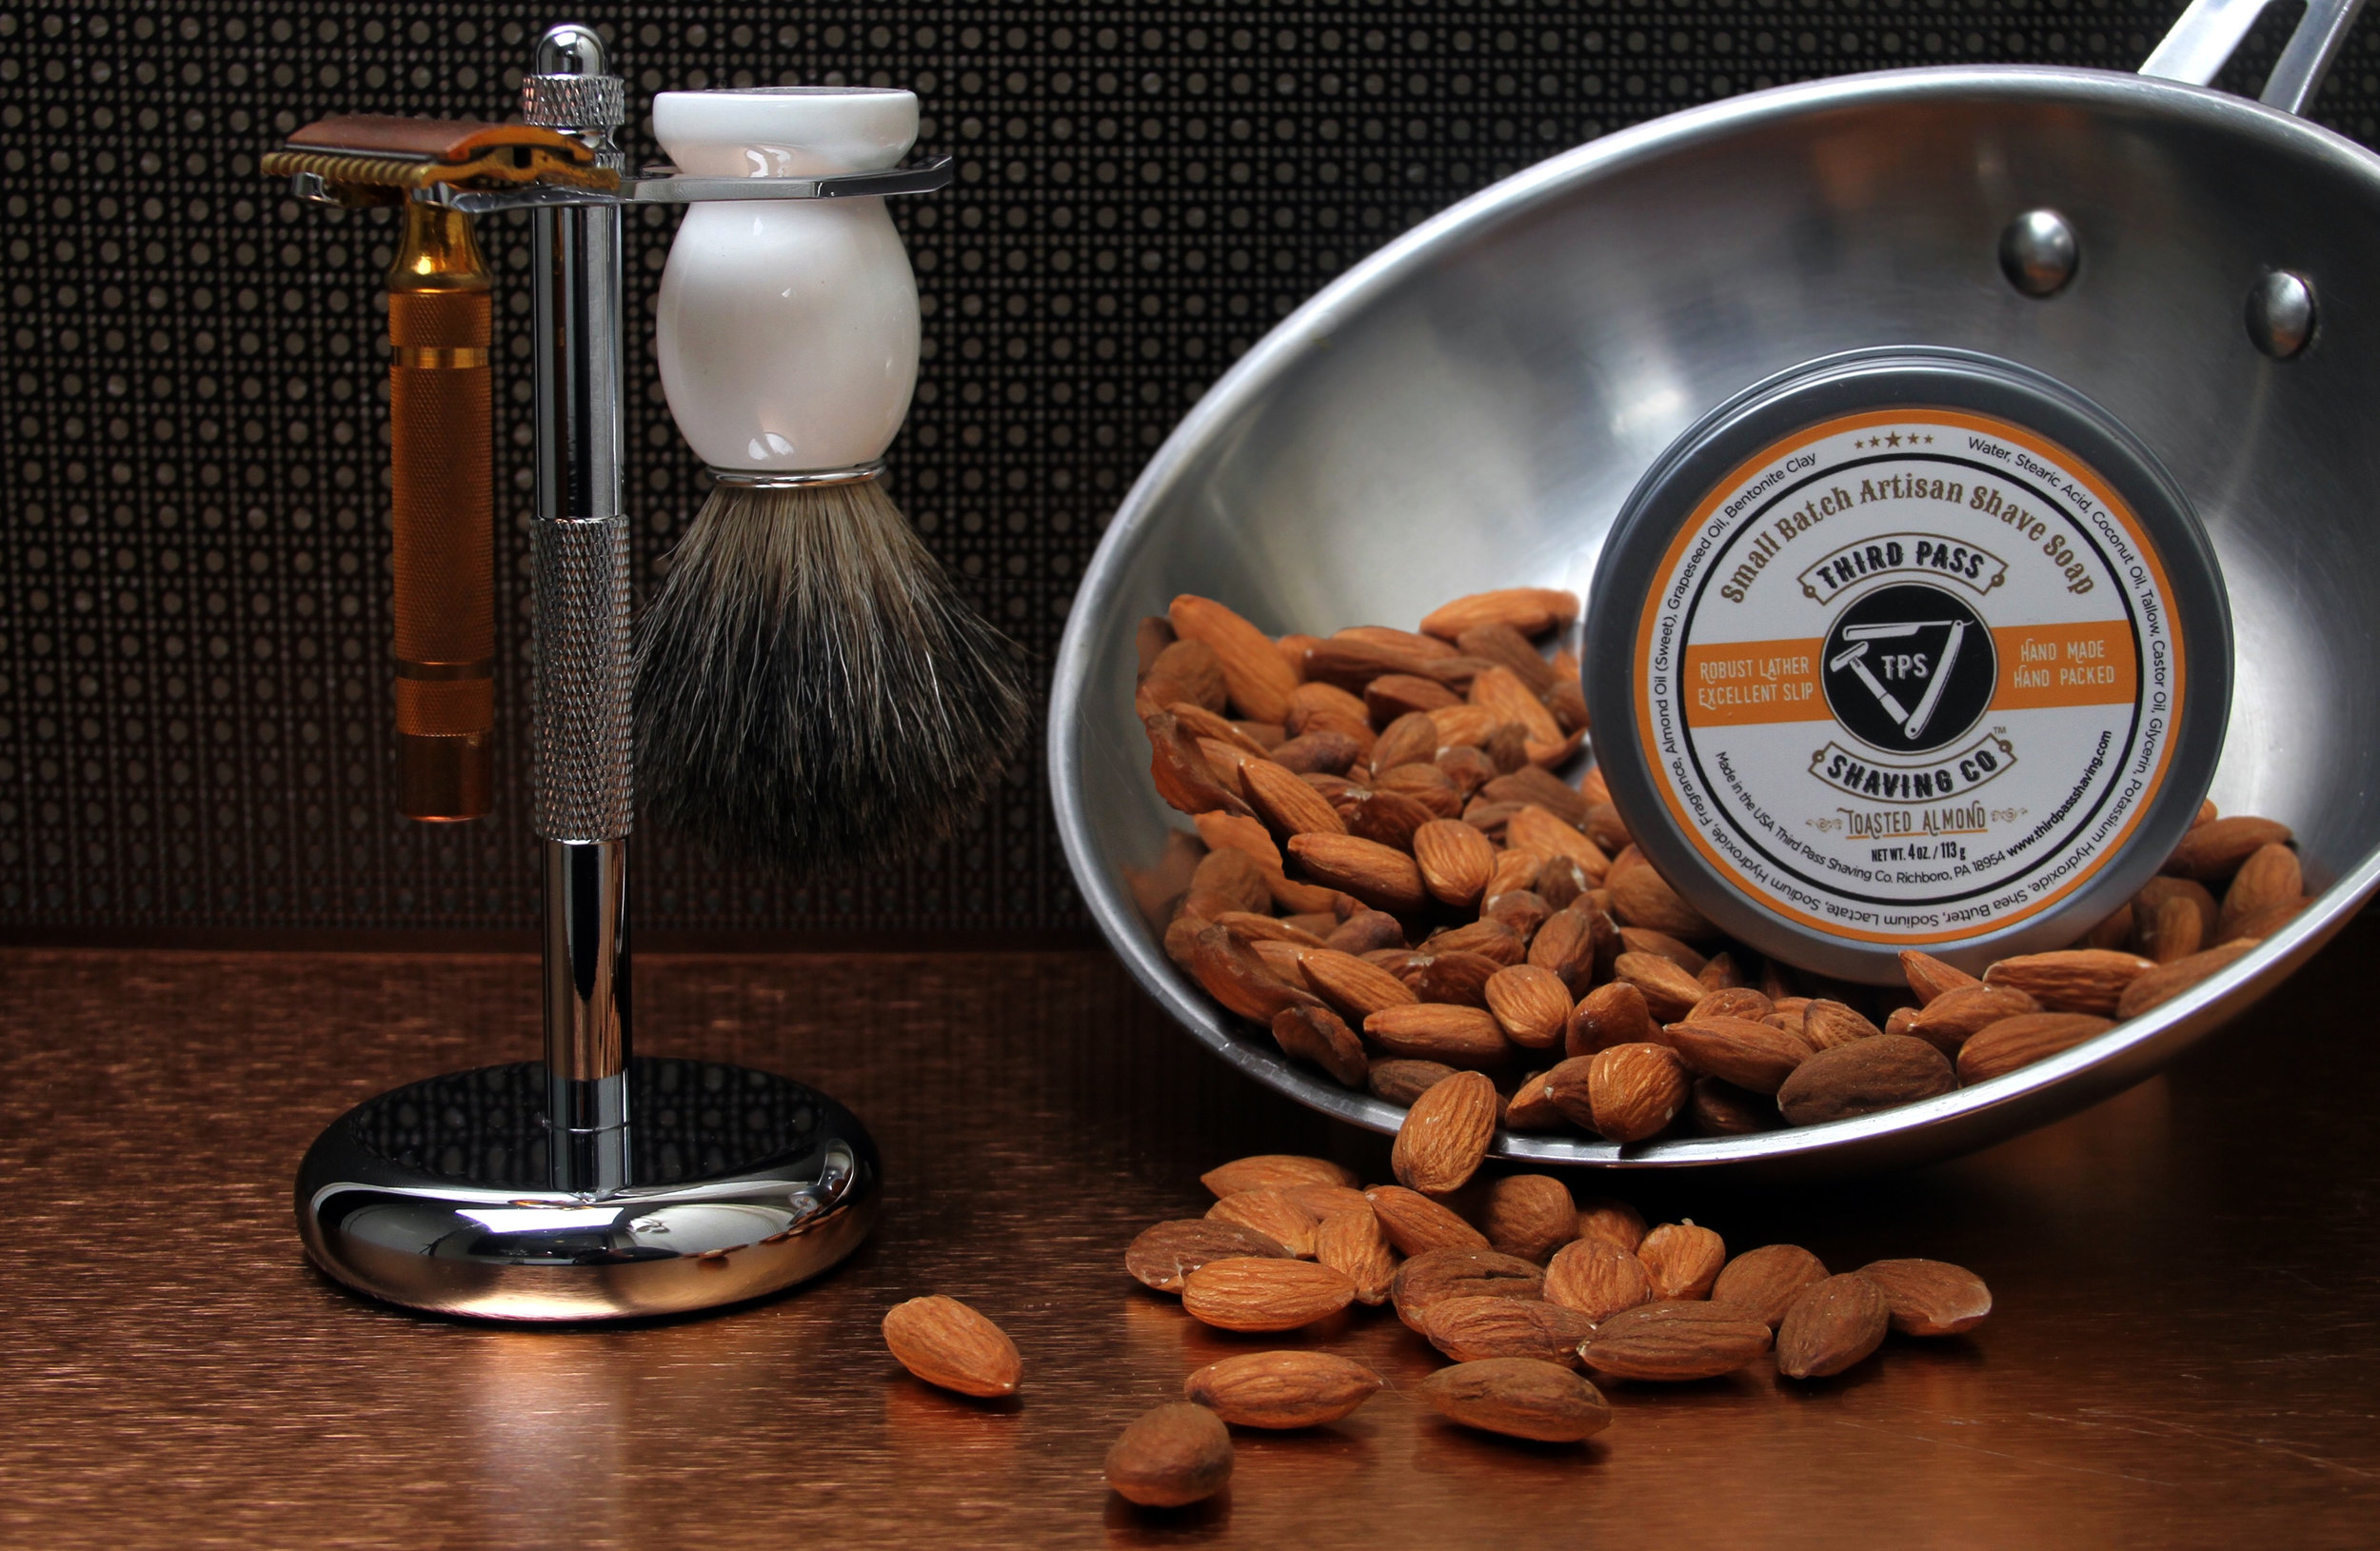 Toasted Almond Shave Soap ~ For shaving...not eating.